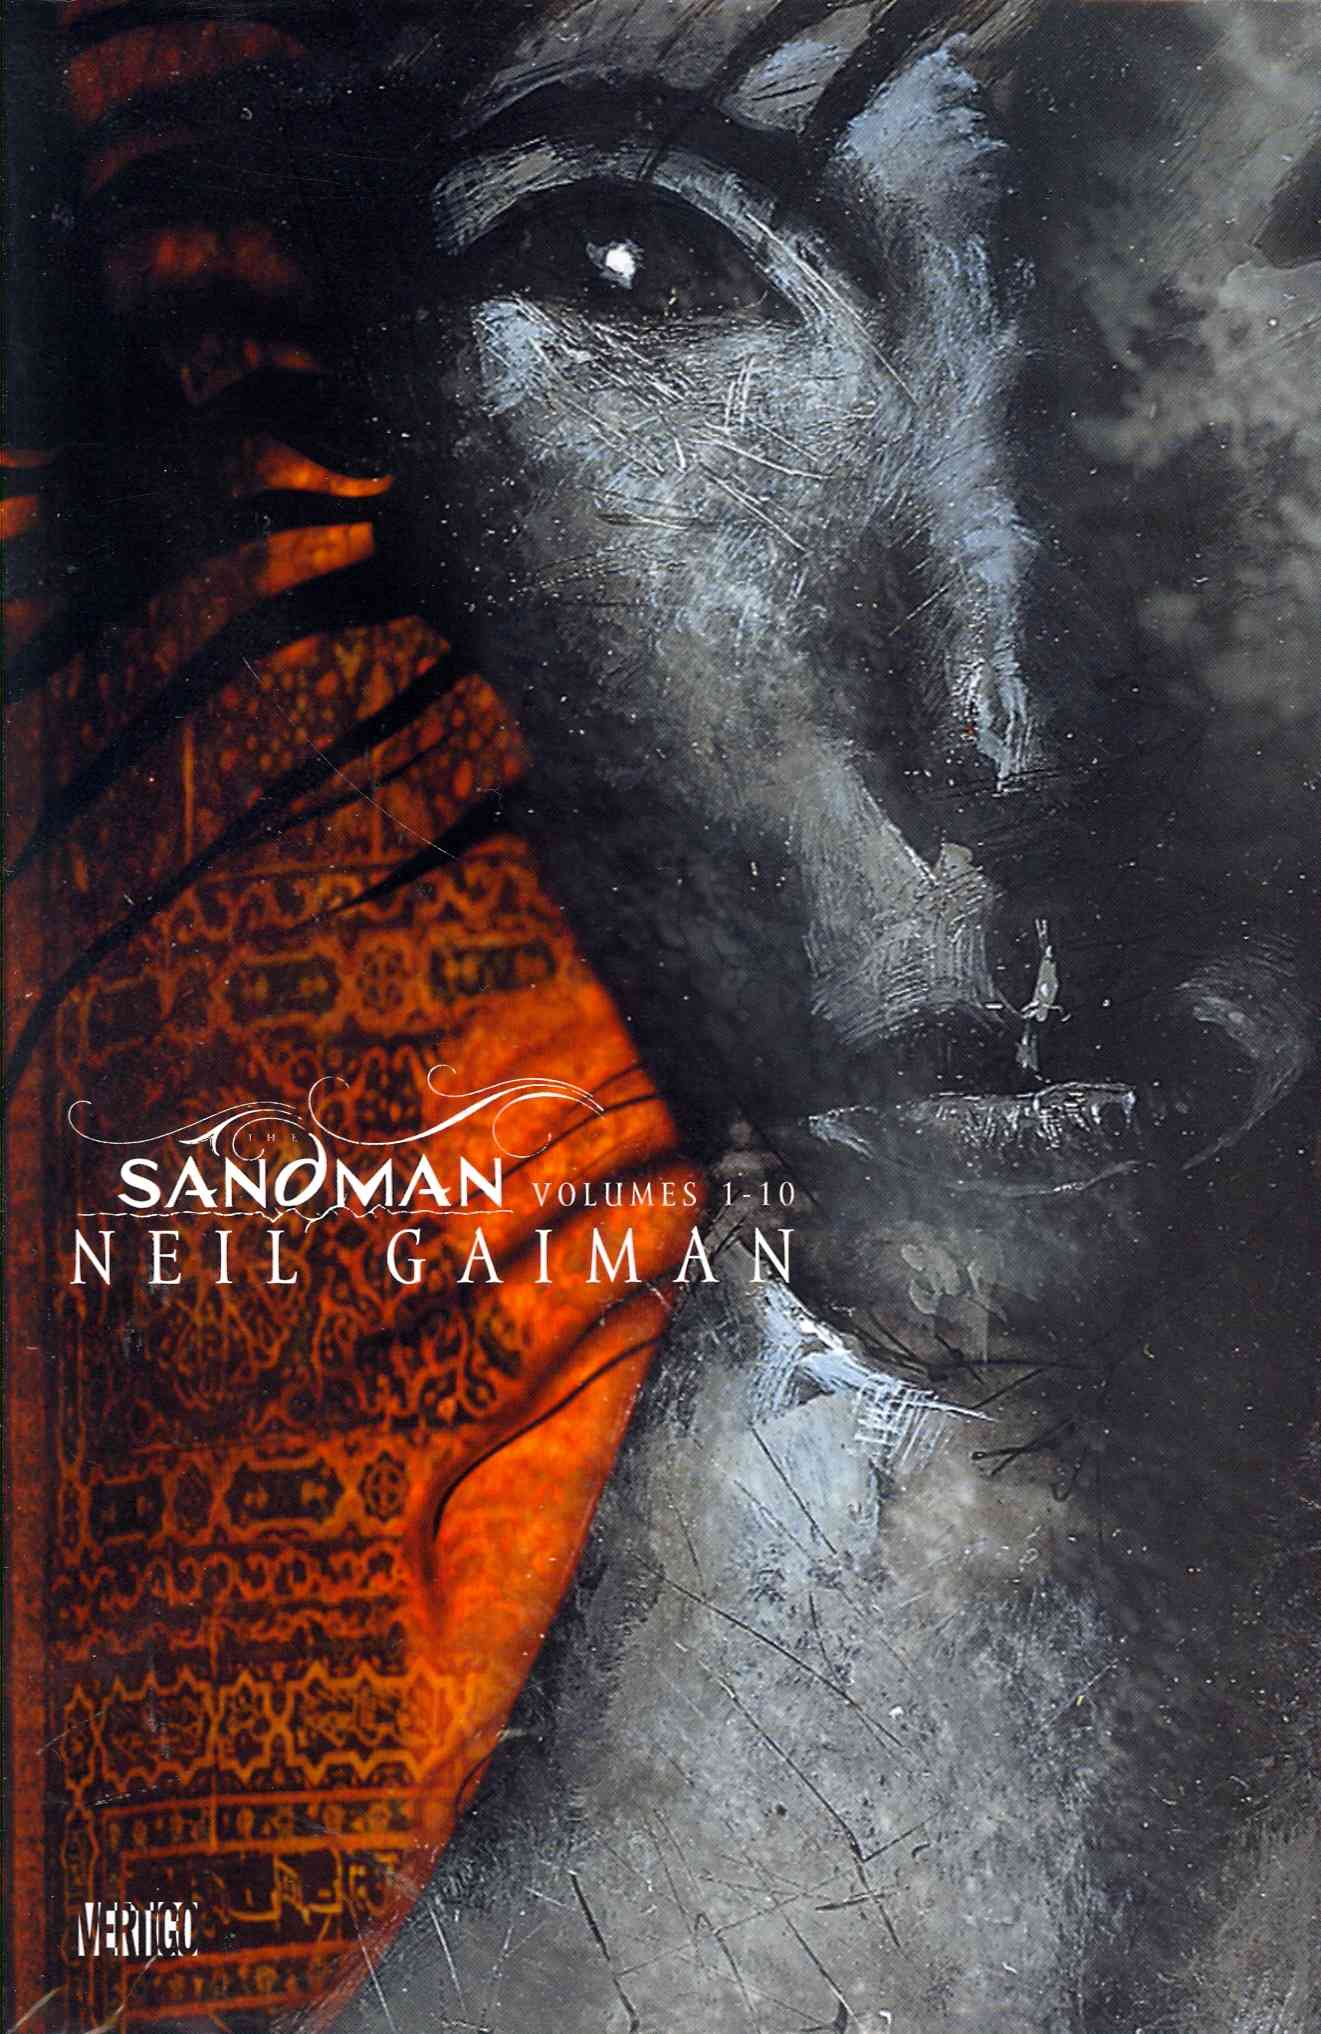 Sandman Slipcase Set By Gaiman, Neil